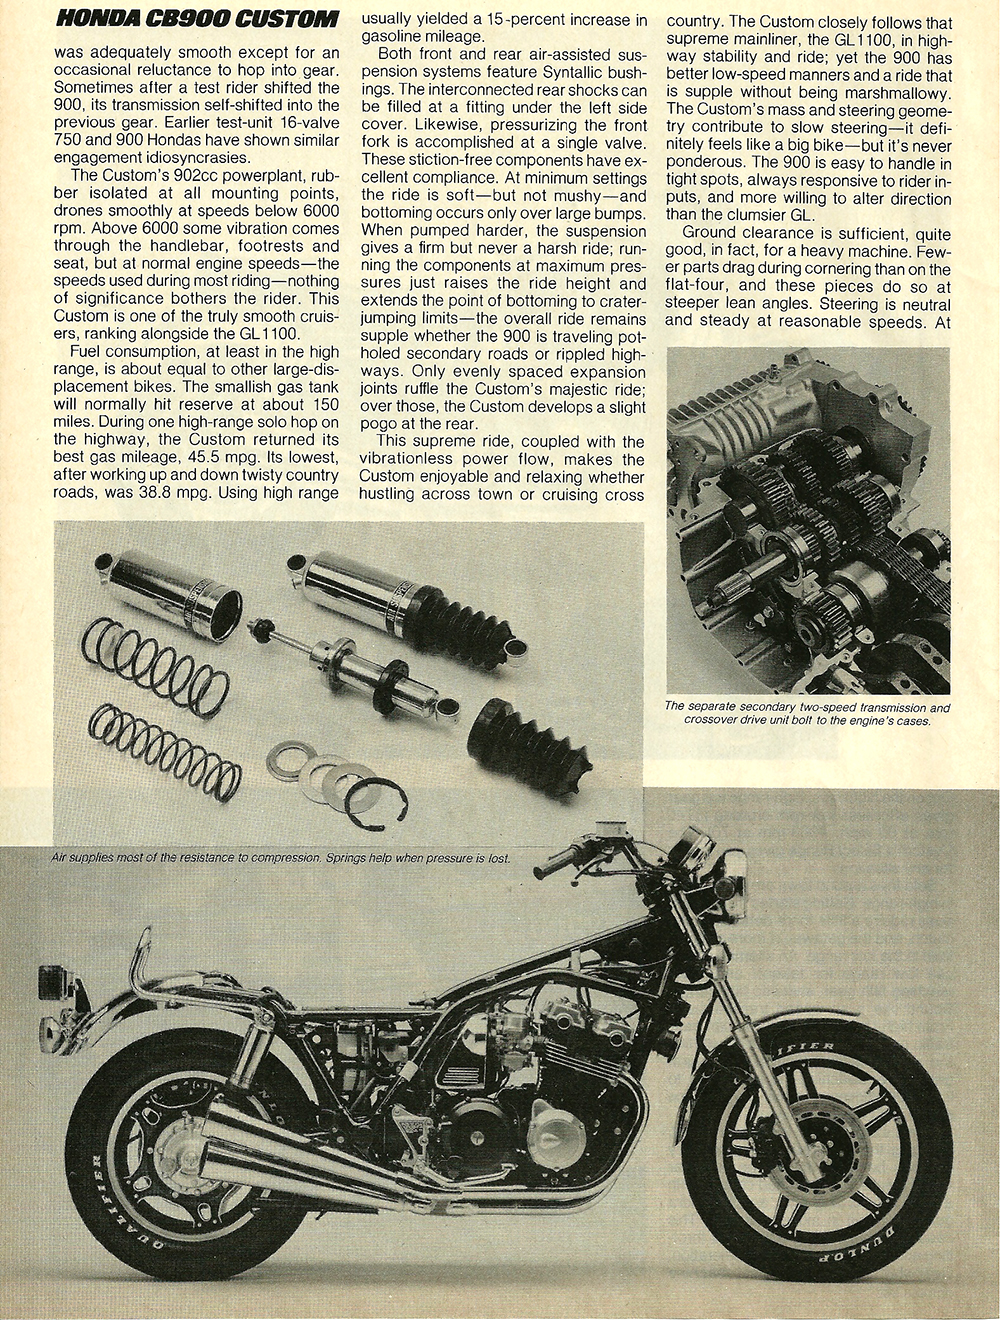 1982 Honda CB900C Custom road test 5.jpg